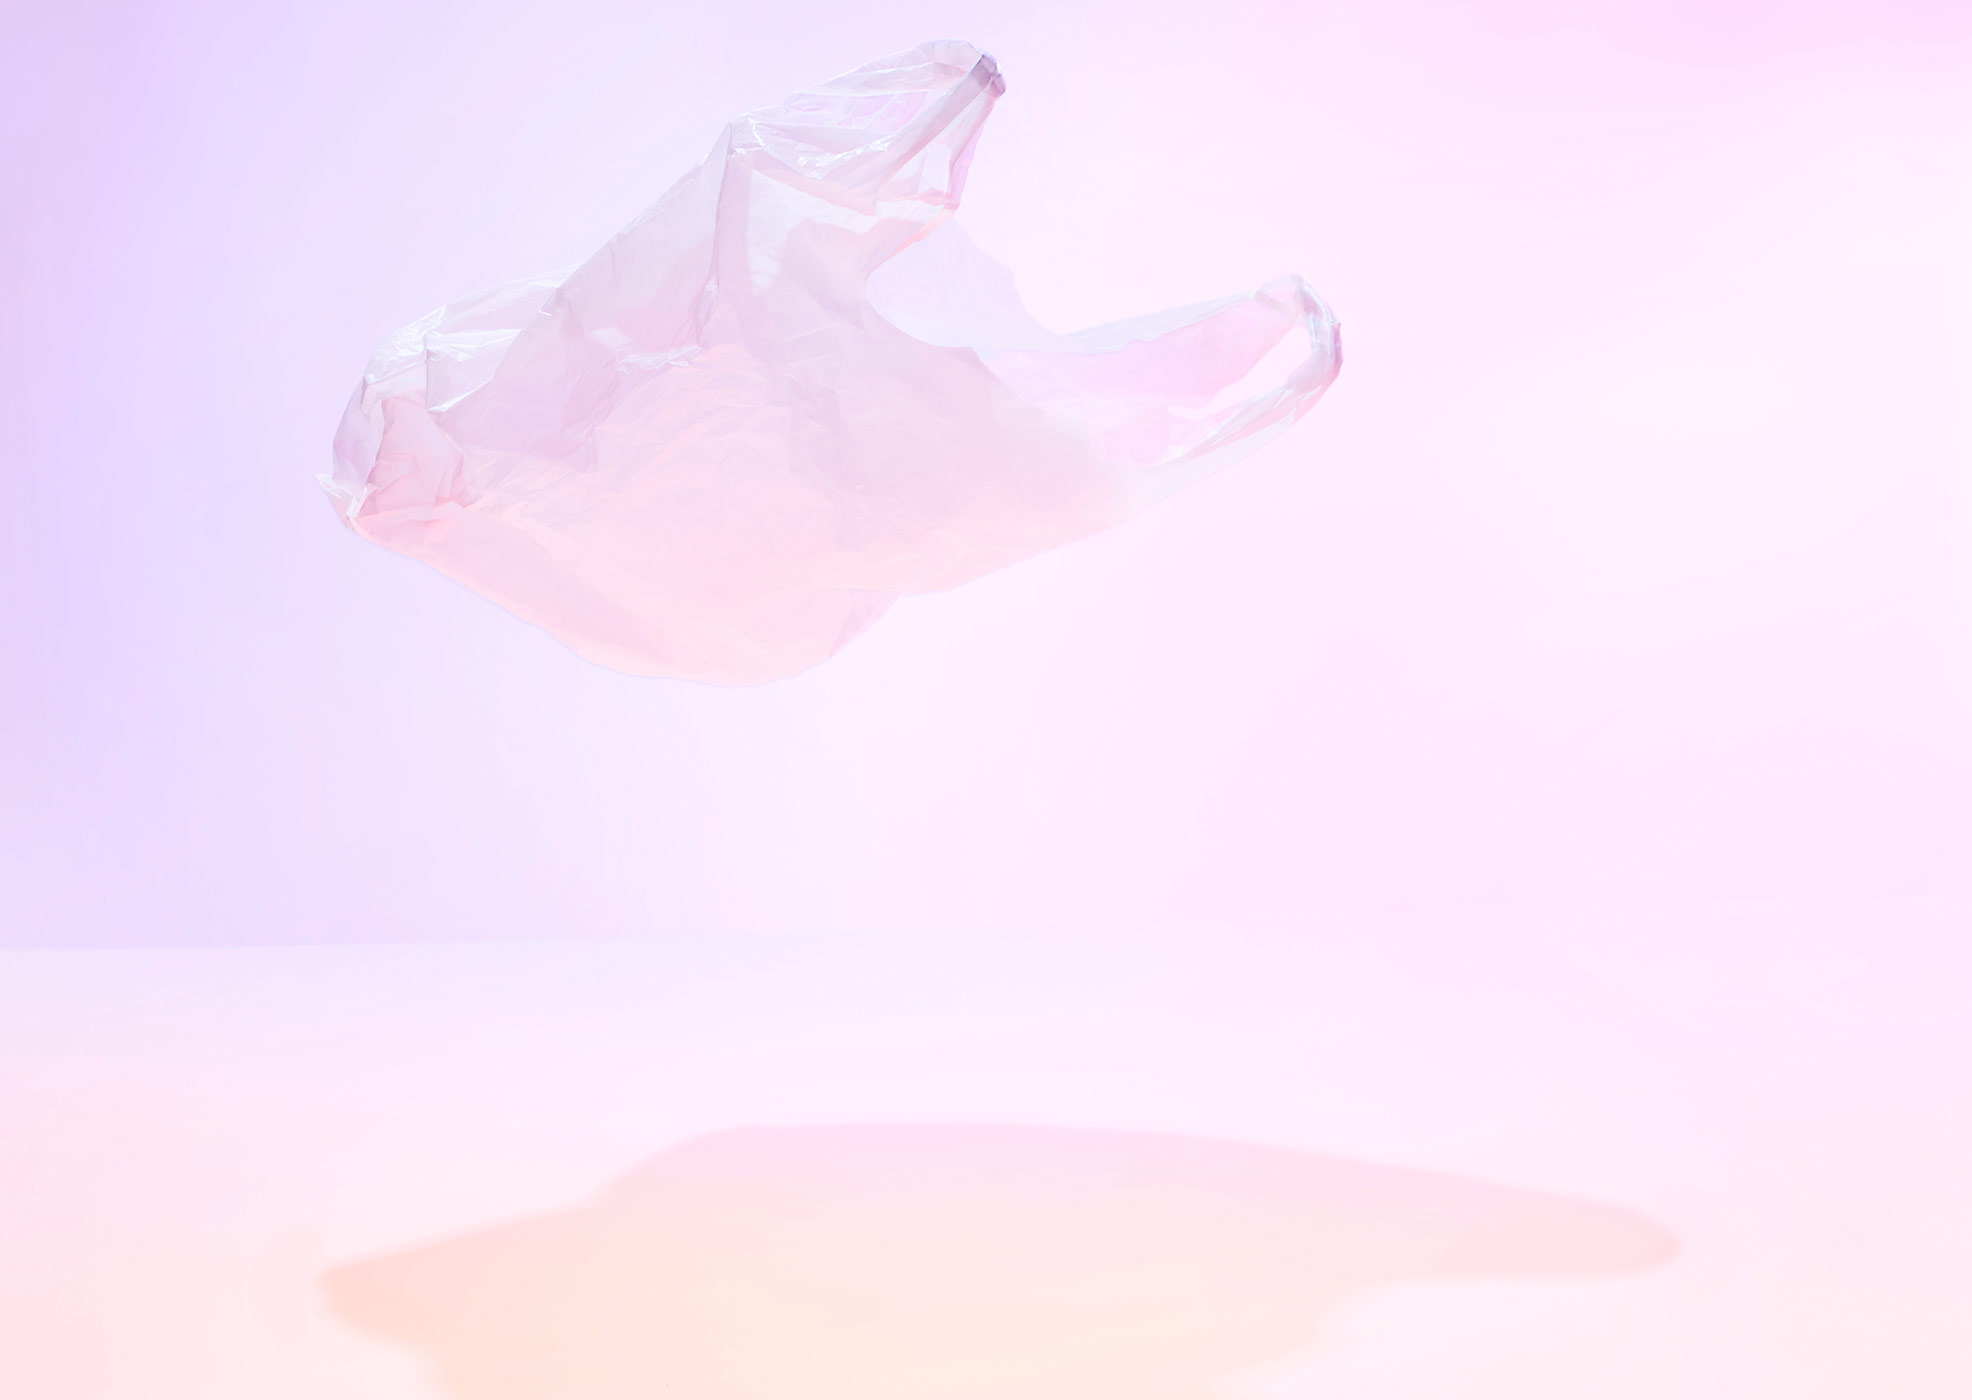 PLASTICBAG_PURPLE_FLYING